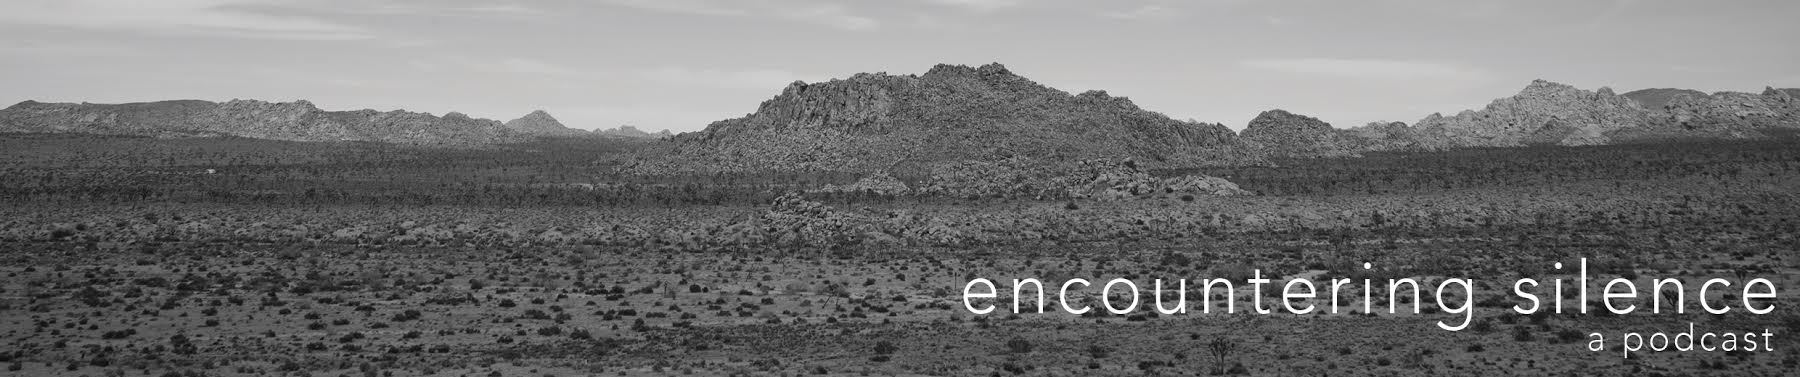 encounteringsilencebanner